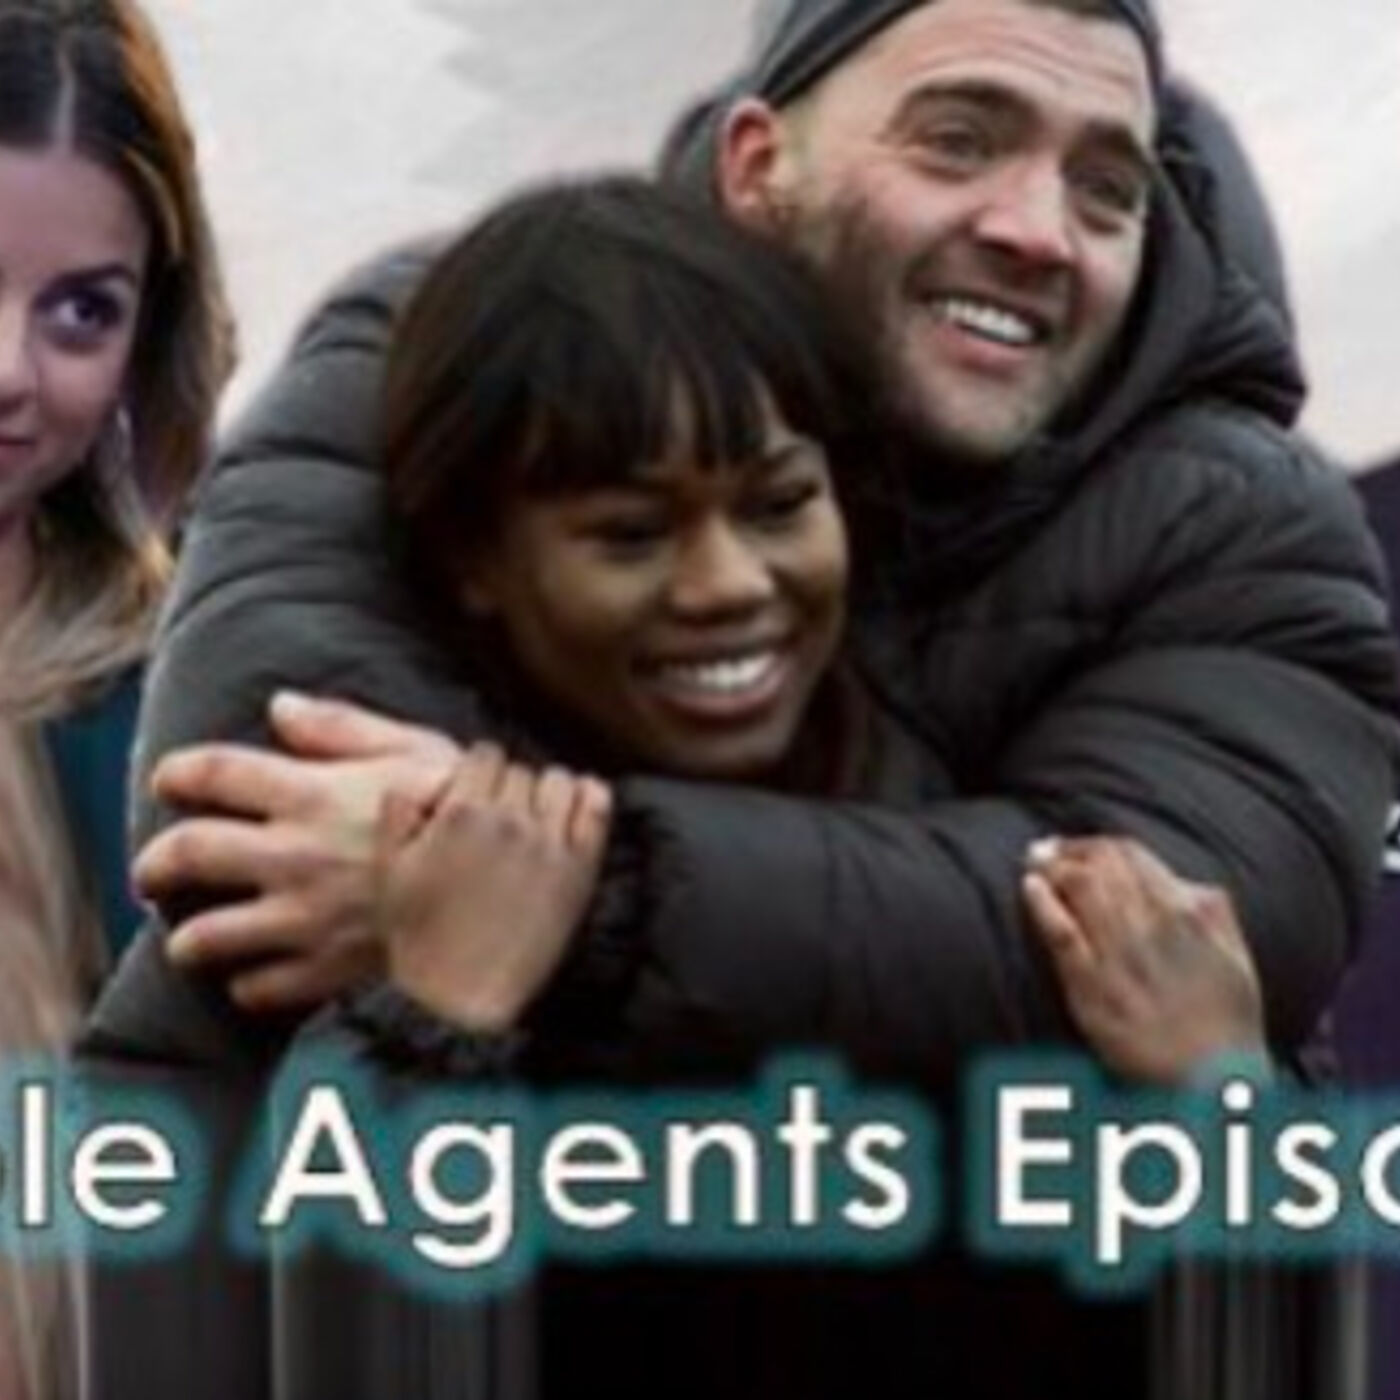 Challenge Double Agents Episode 5 Recap: First Meeting of the Itty Bitty Committee